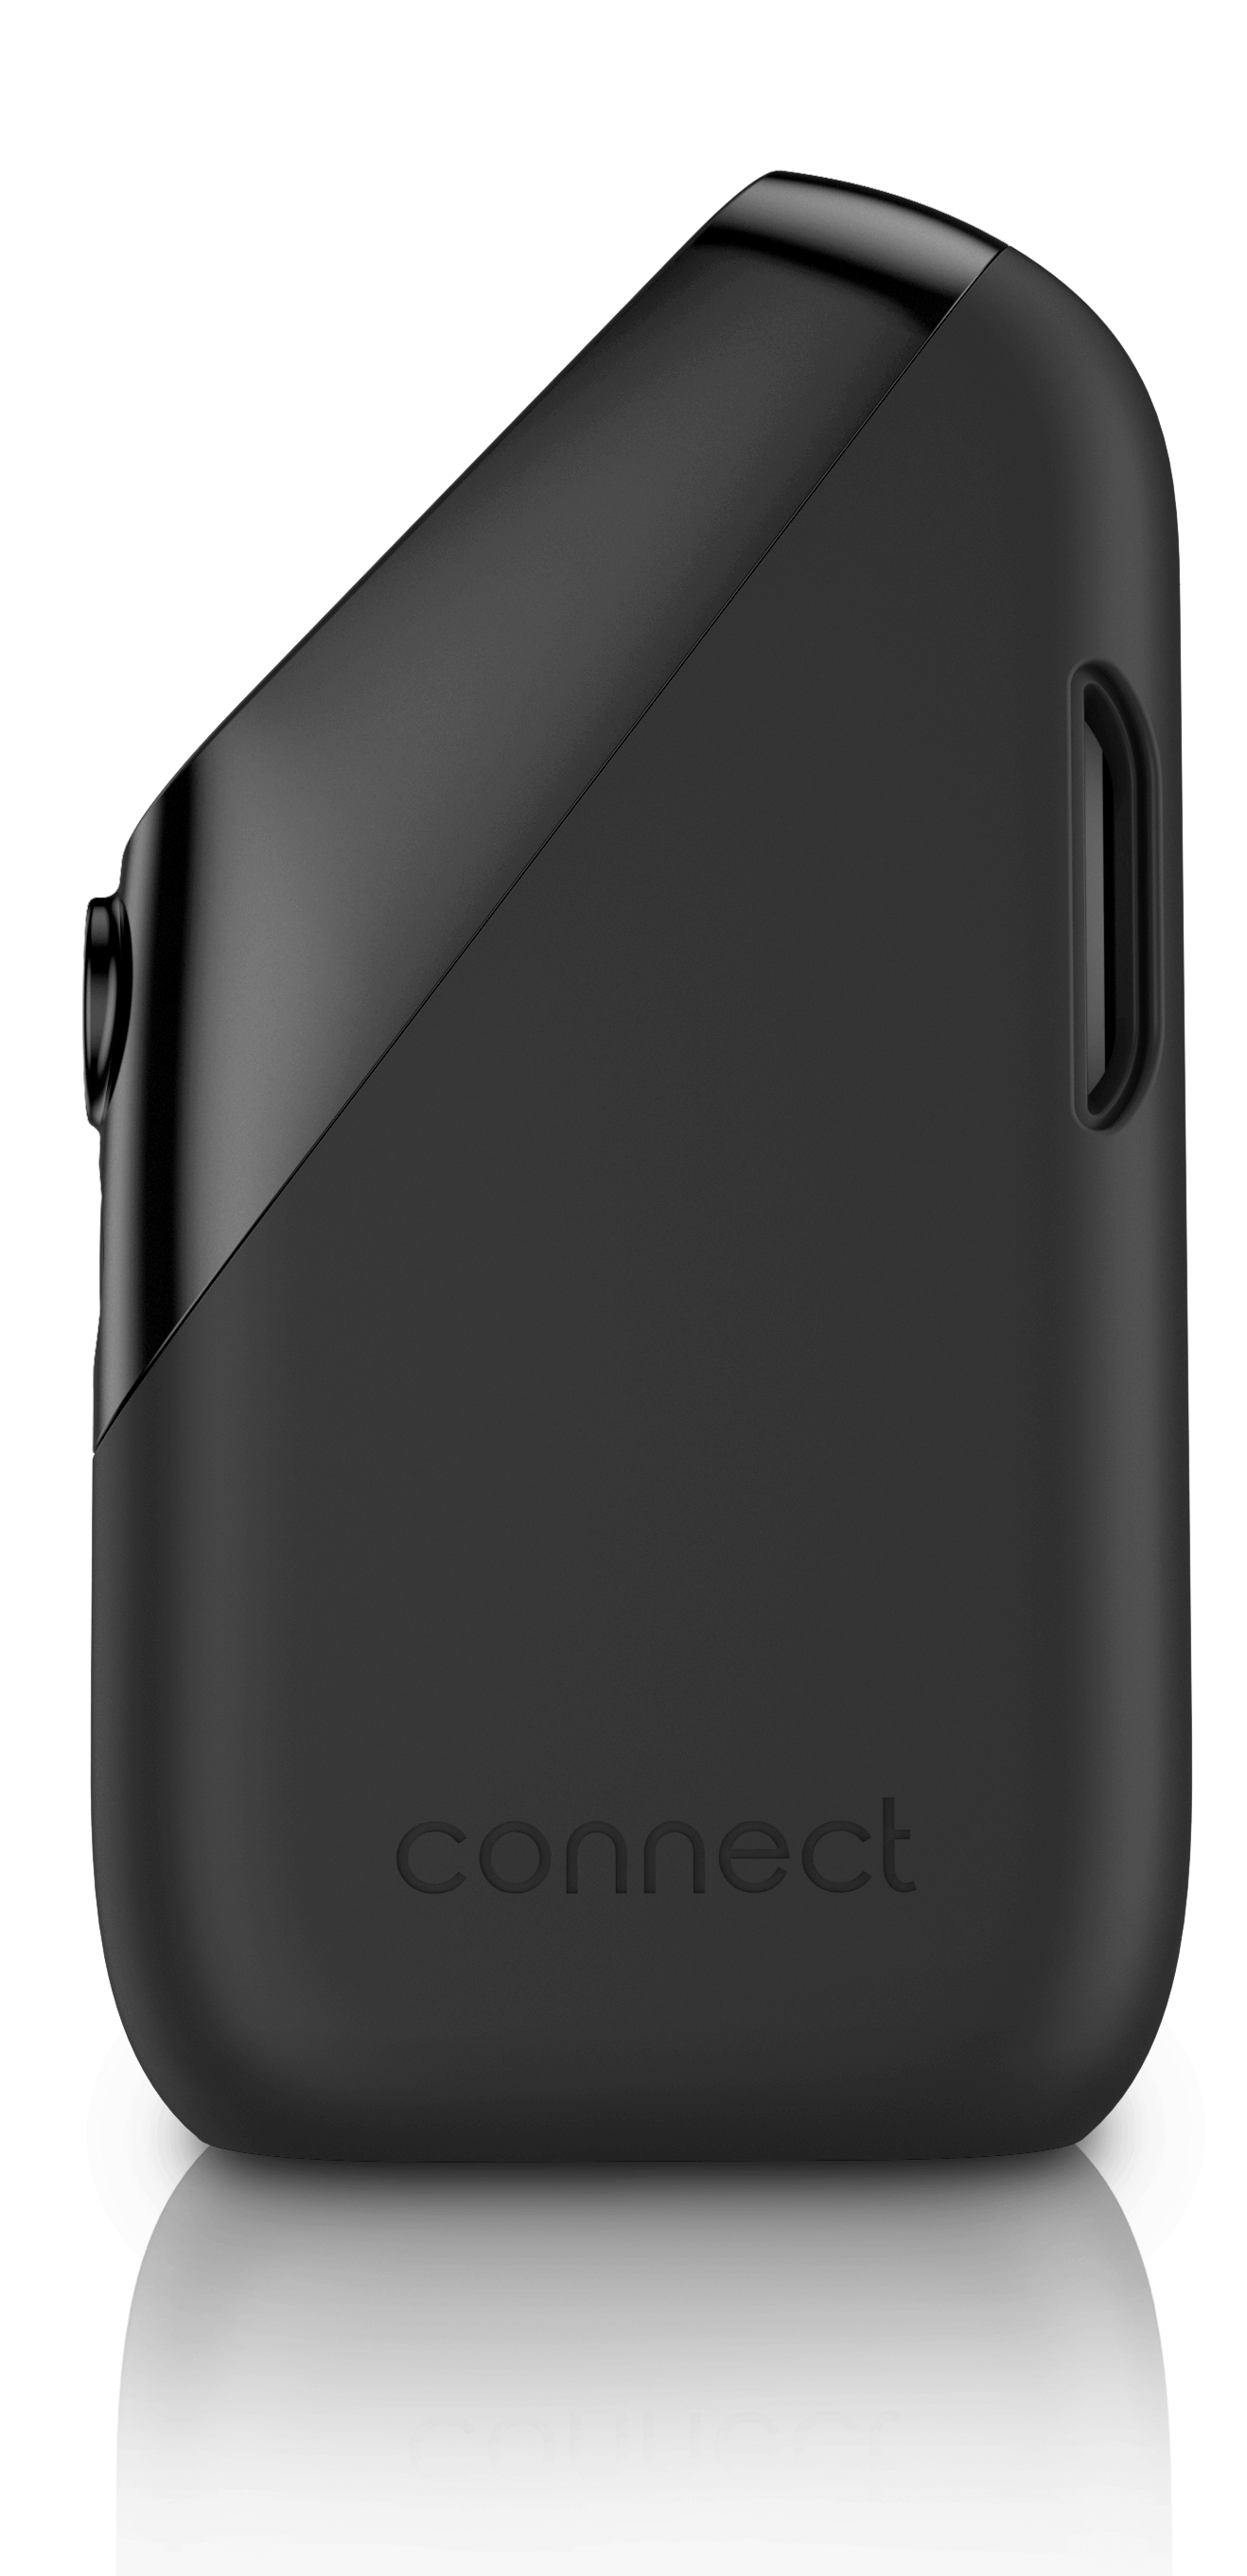 Sobelink Connect Device Back